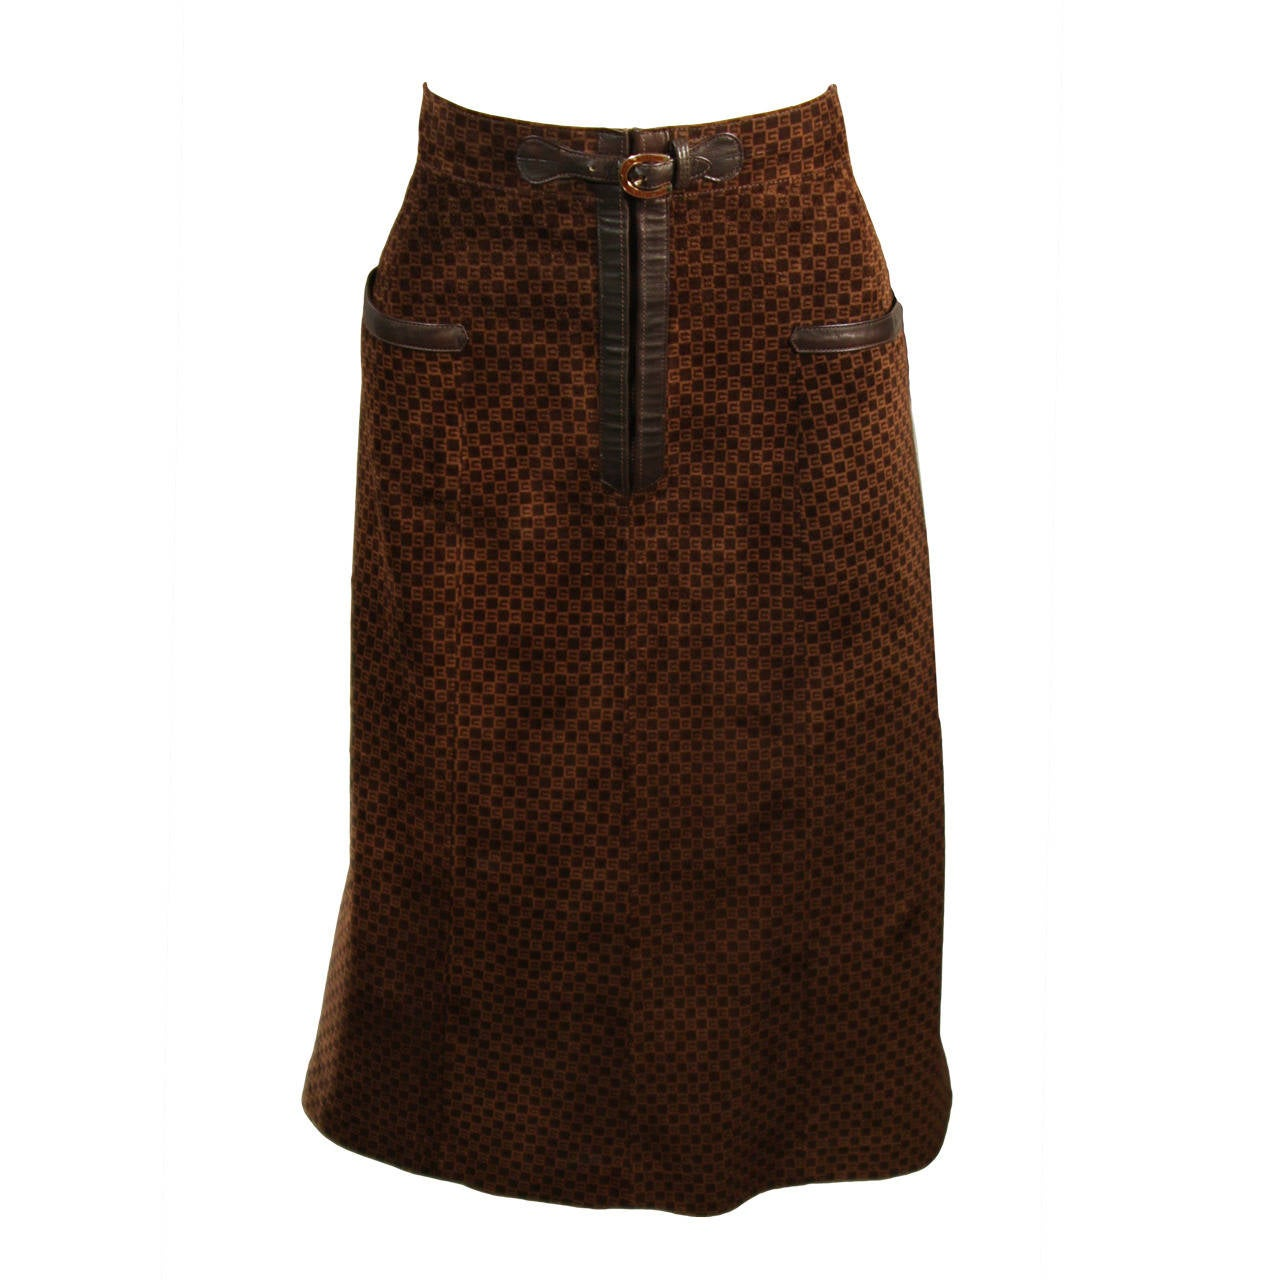 Gucci Brown Suede Skirt with Horse Shoe Detail